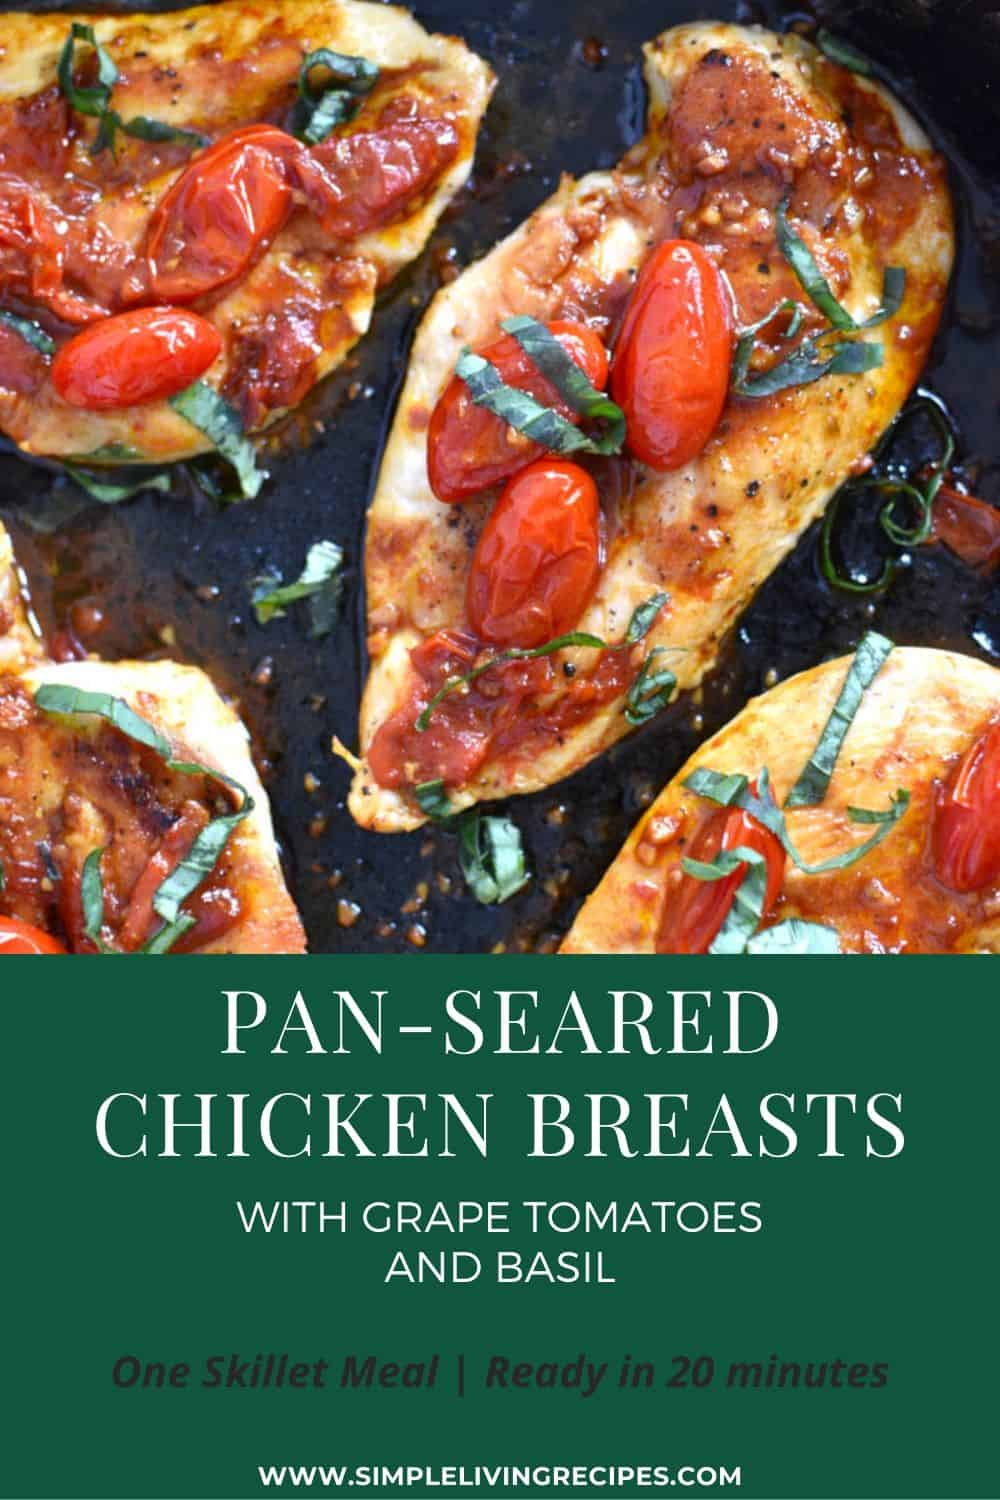 Pan-seared chicken breasts with tomatoes and basil Pinterest Pin